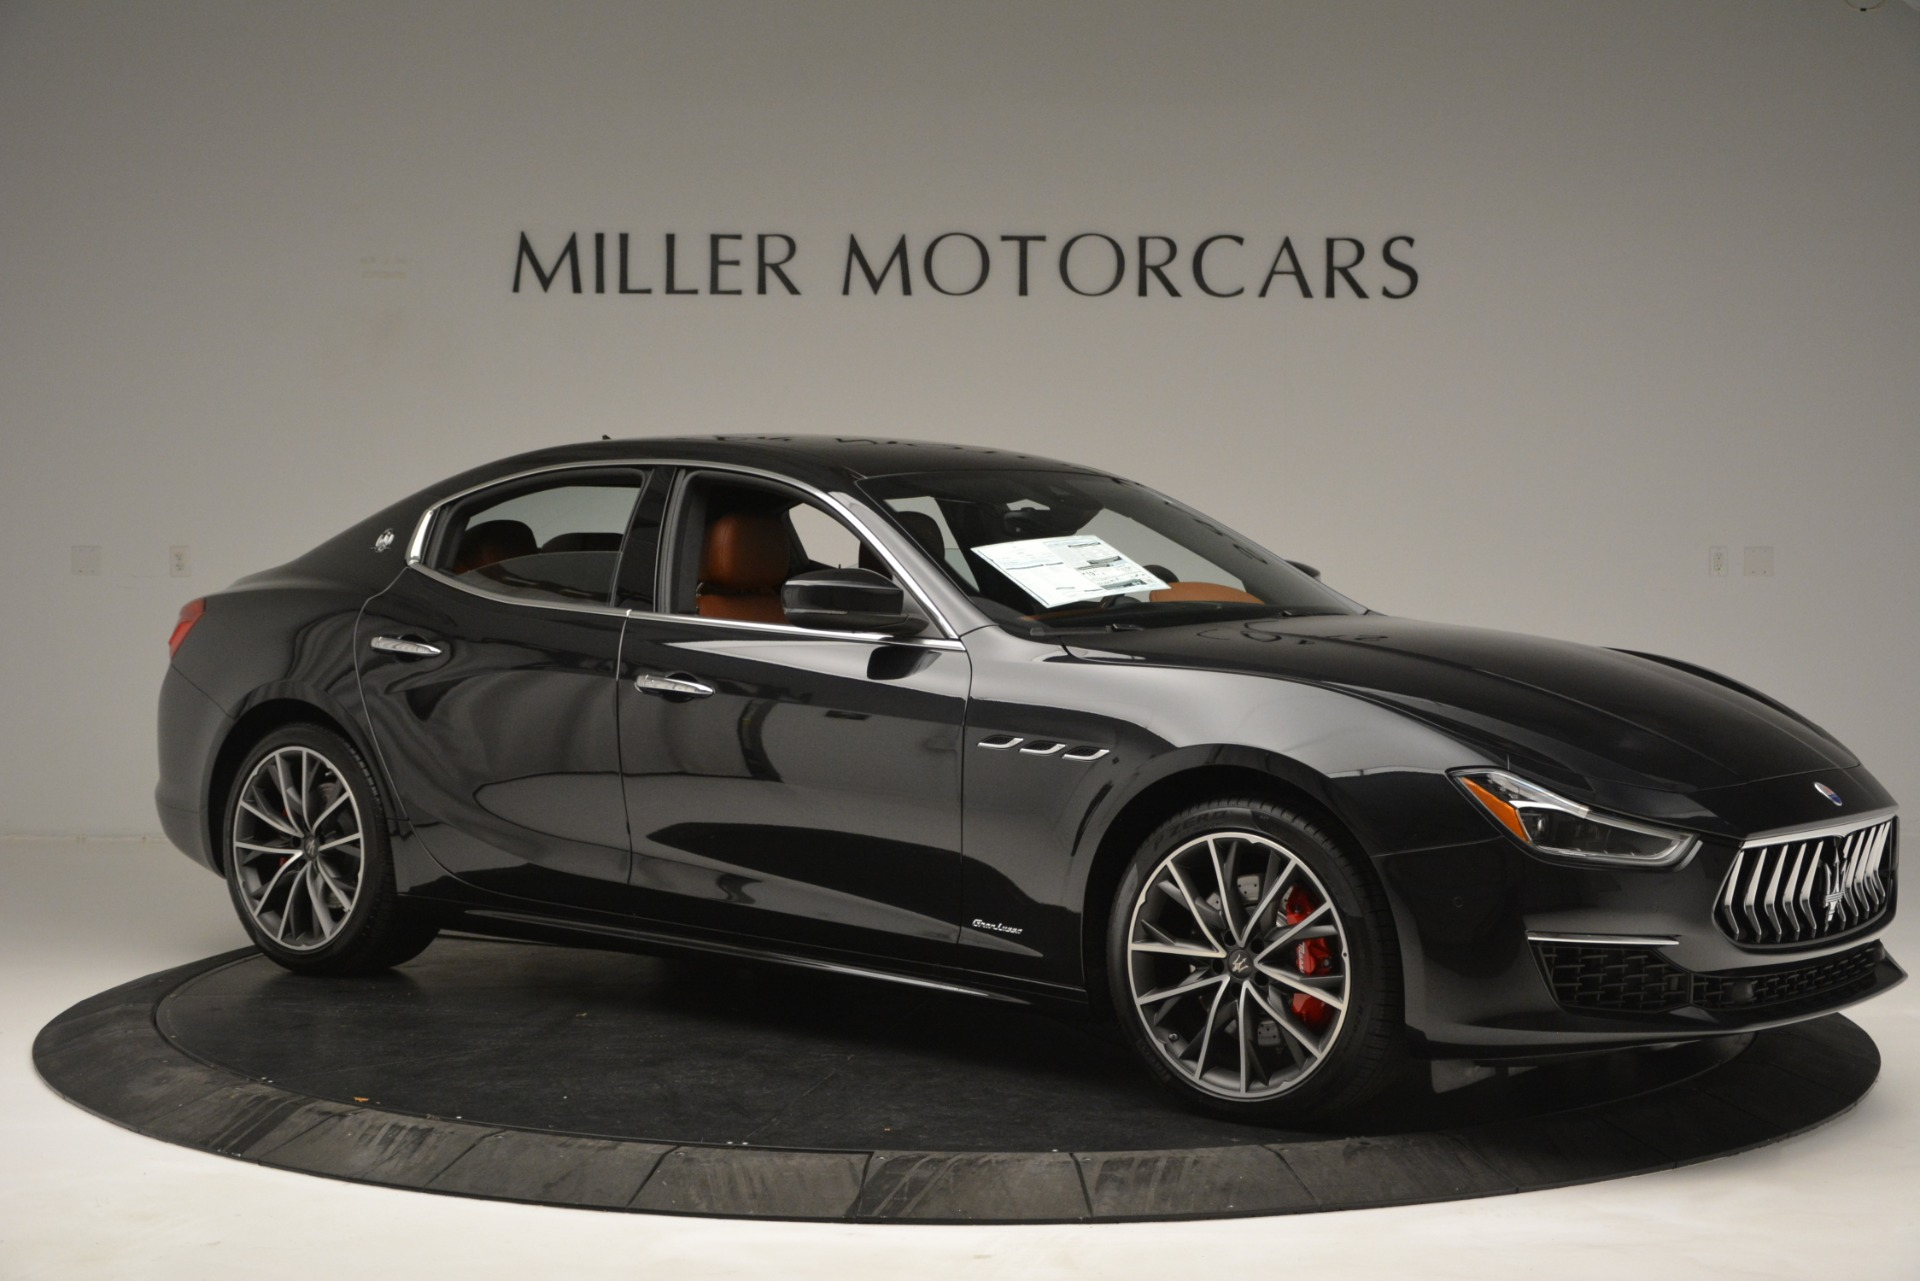 New 2019 Maserati Ghibli S Q4 GranLusso For Sale In Greenwich, CT 2590_p10